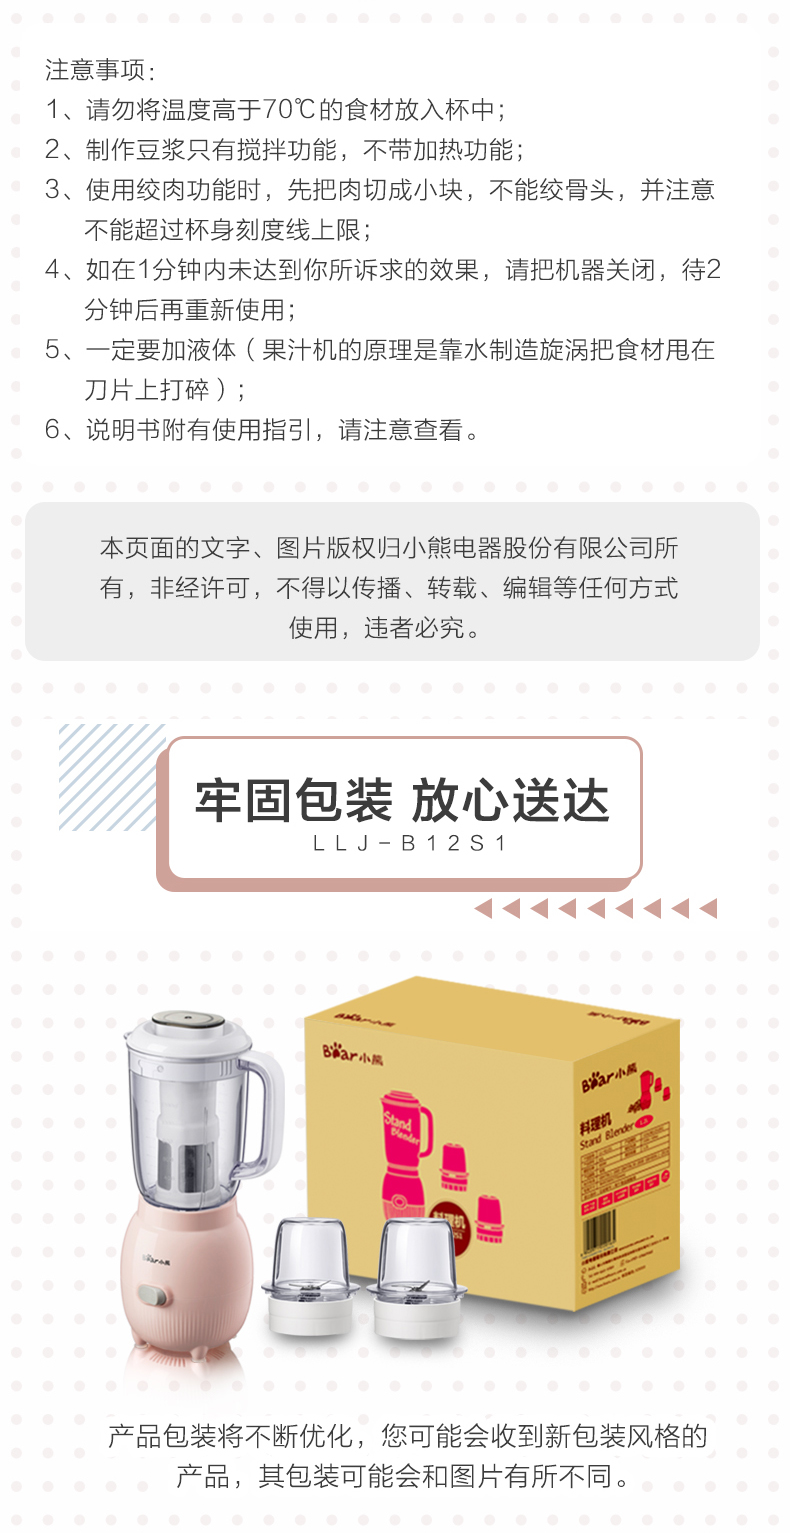 Pressed Soy Milk Cooking Machine Household Mini Small Food Bar Free Filter Baby Food Supplement Automatic Mixer 22